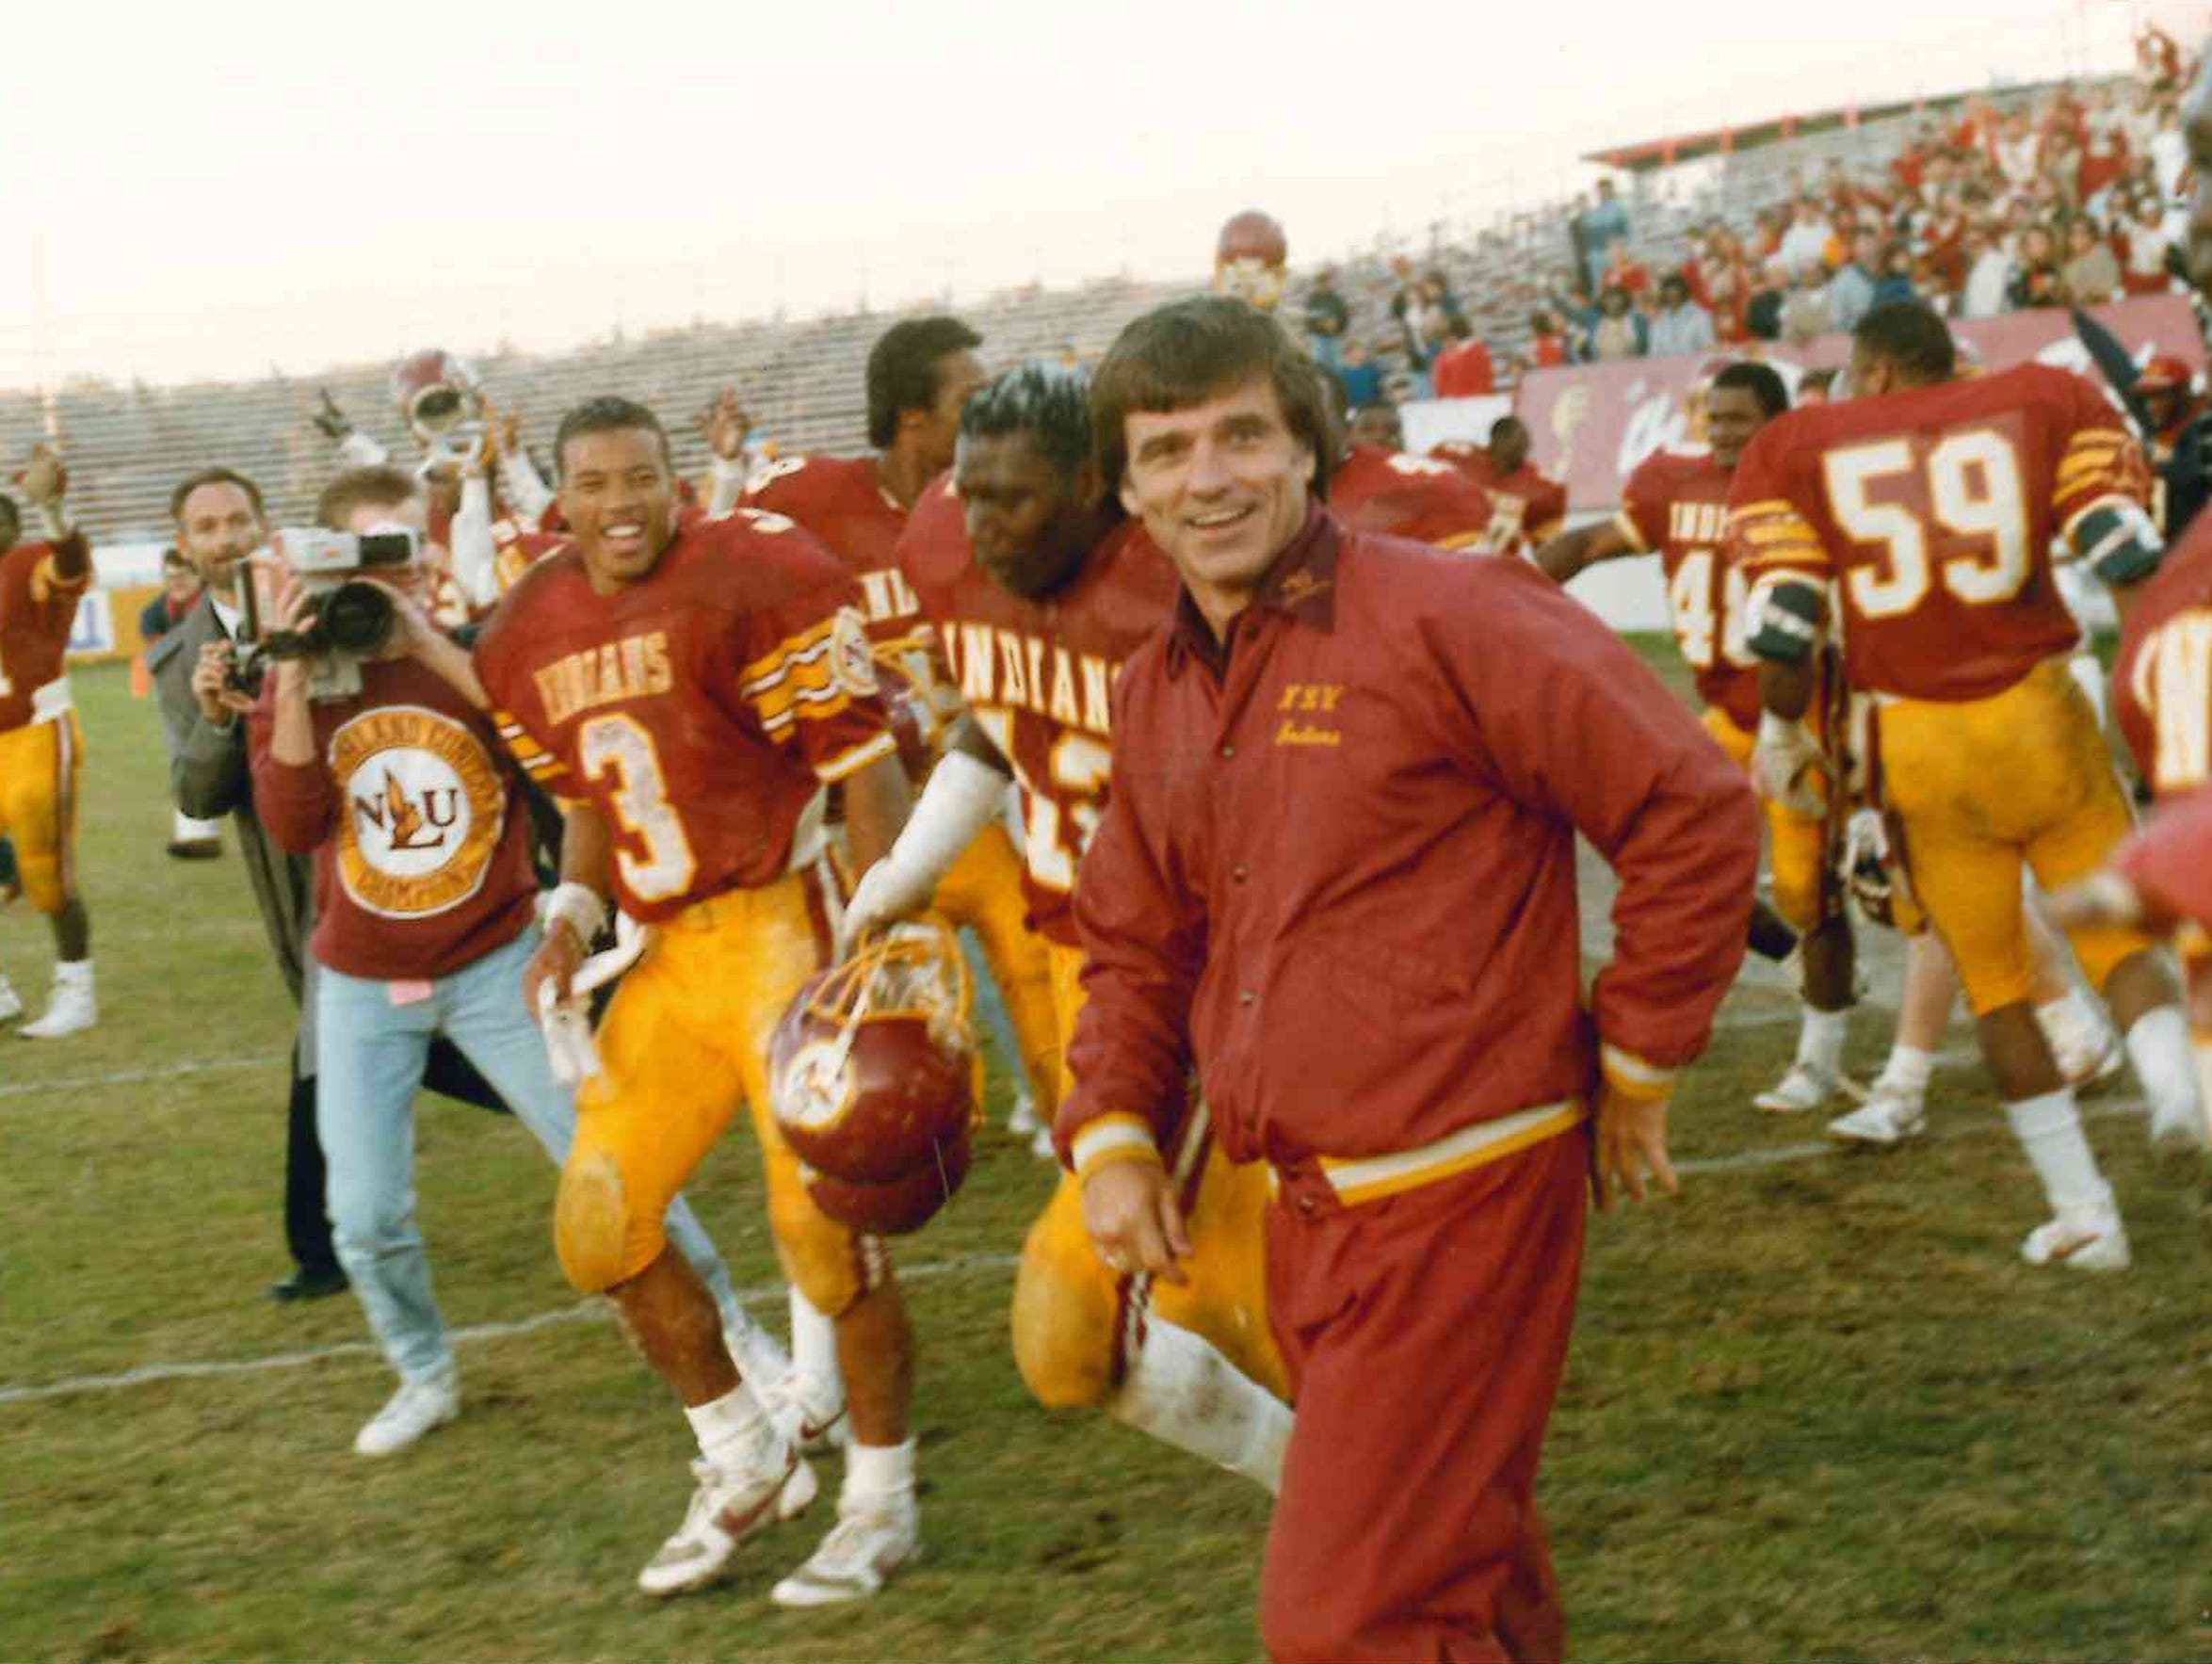 Pat Collins, the winningest coach in ULM history (57-35),